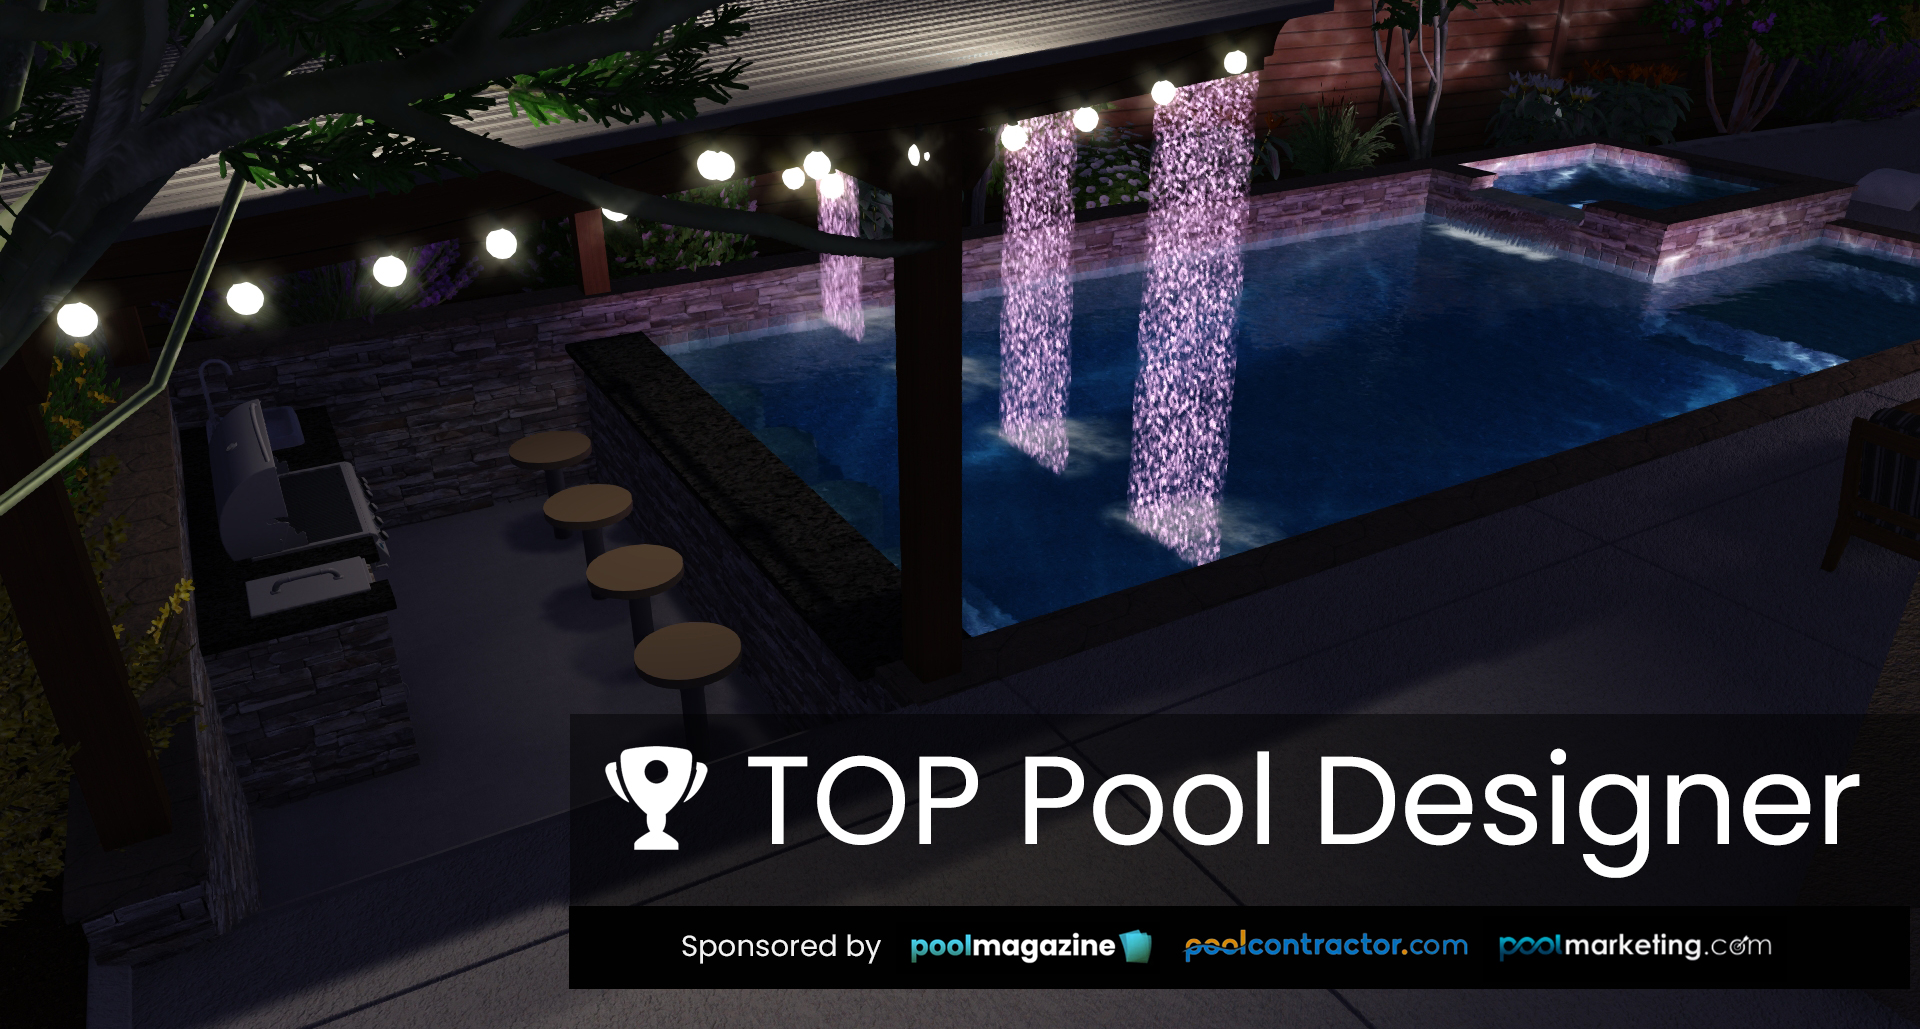 New Pool Design Competition: America's Top Pool Designer